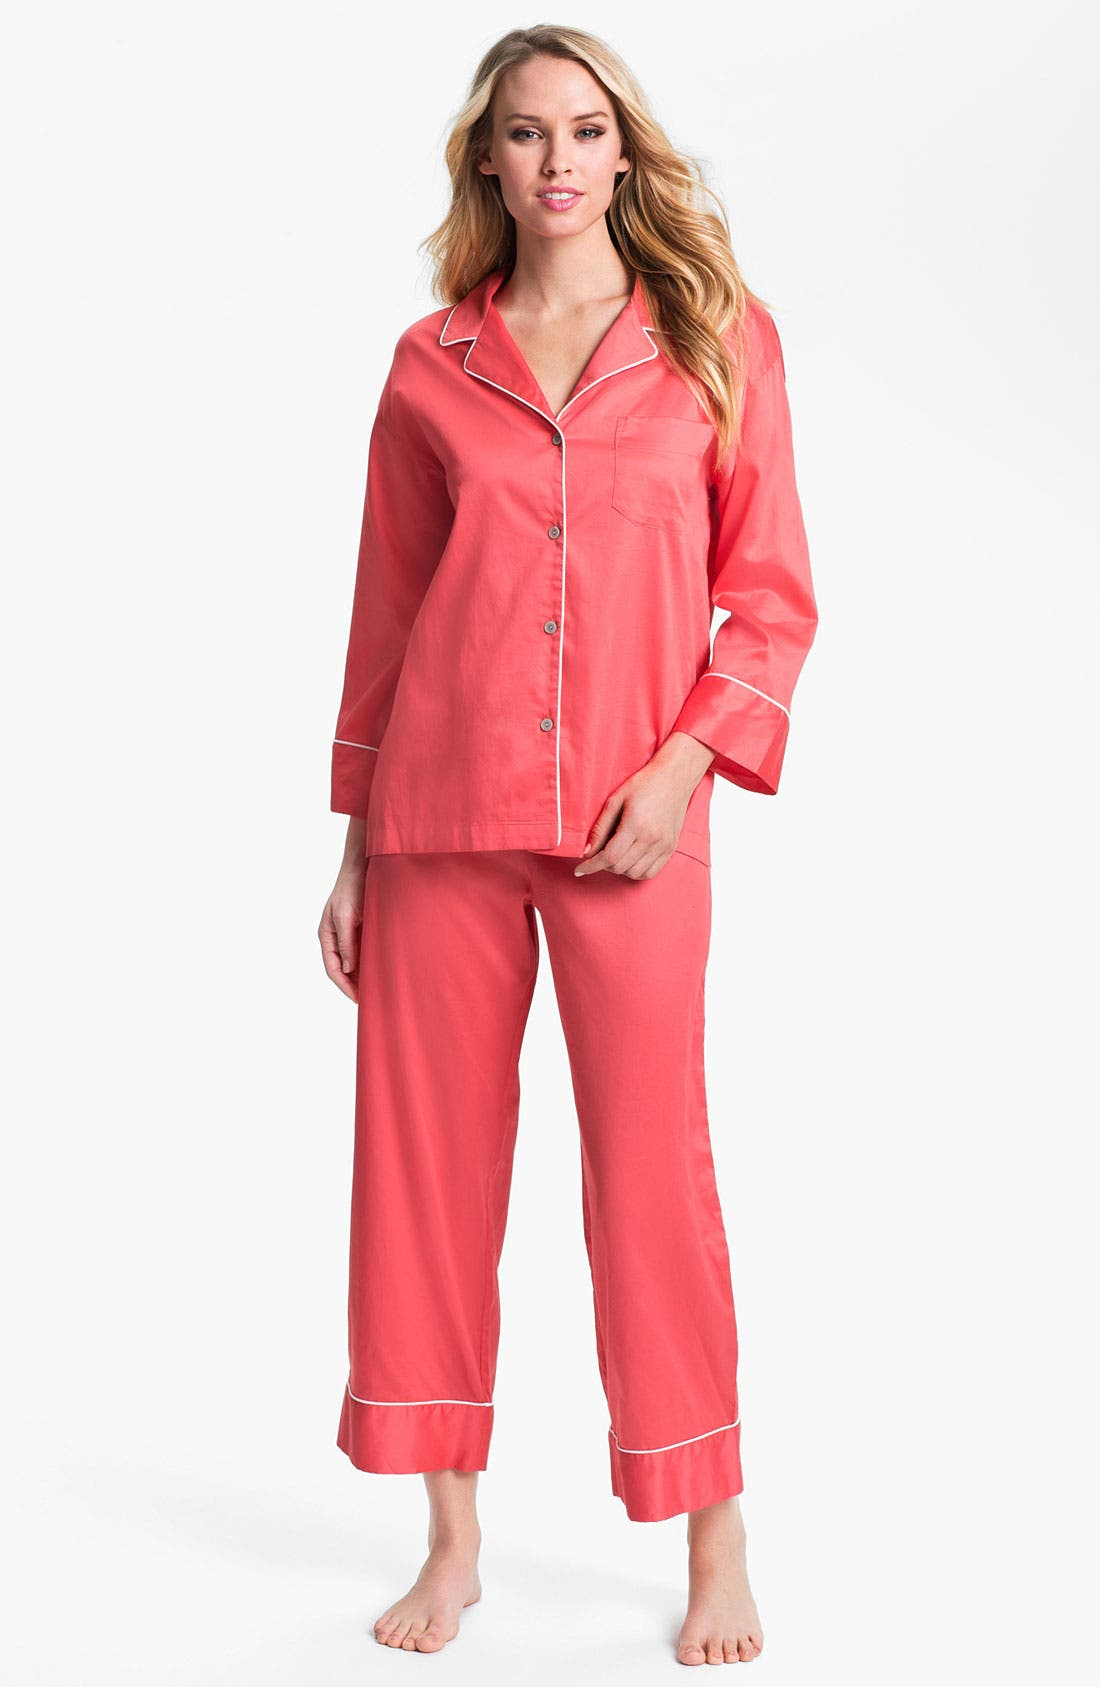 Alternate Image 1 Selected - Natori 'Essence' Pajamas